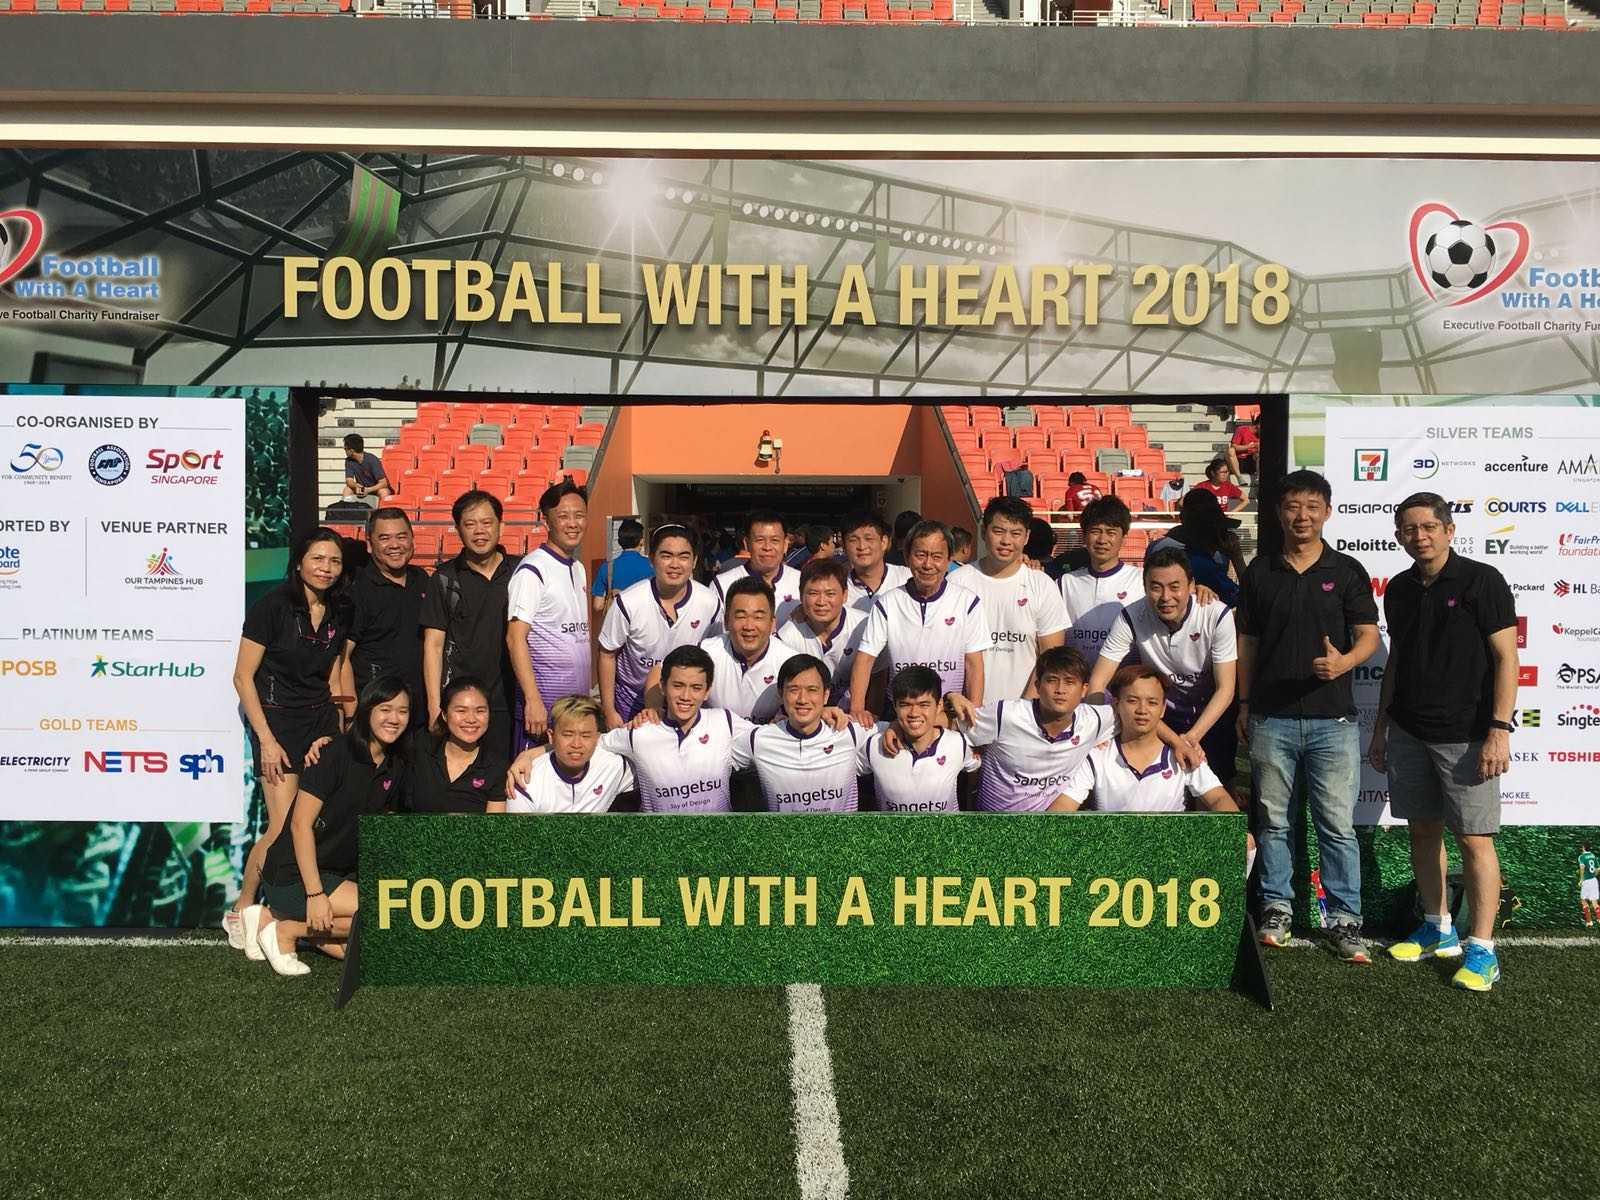 1 Football With A Heart 2018